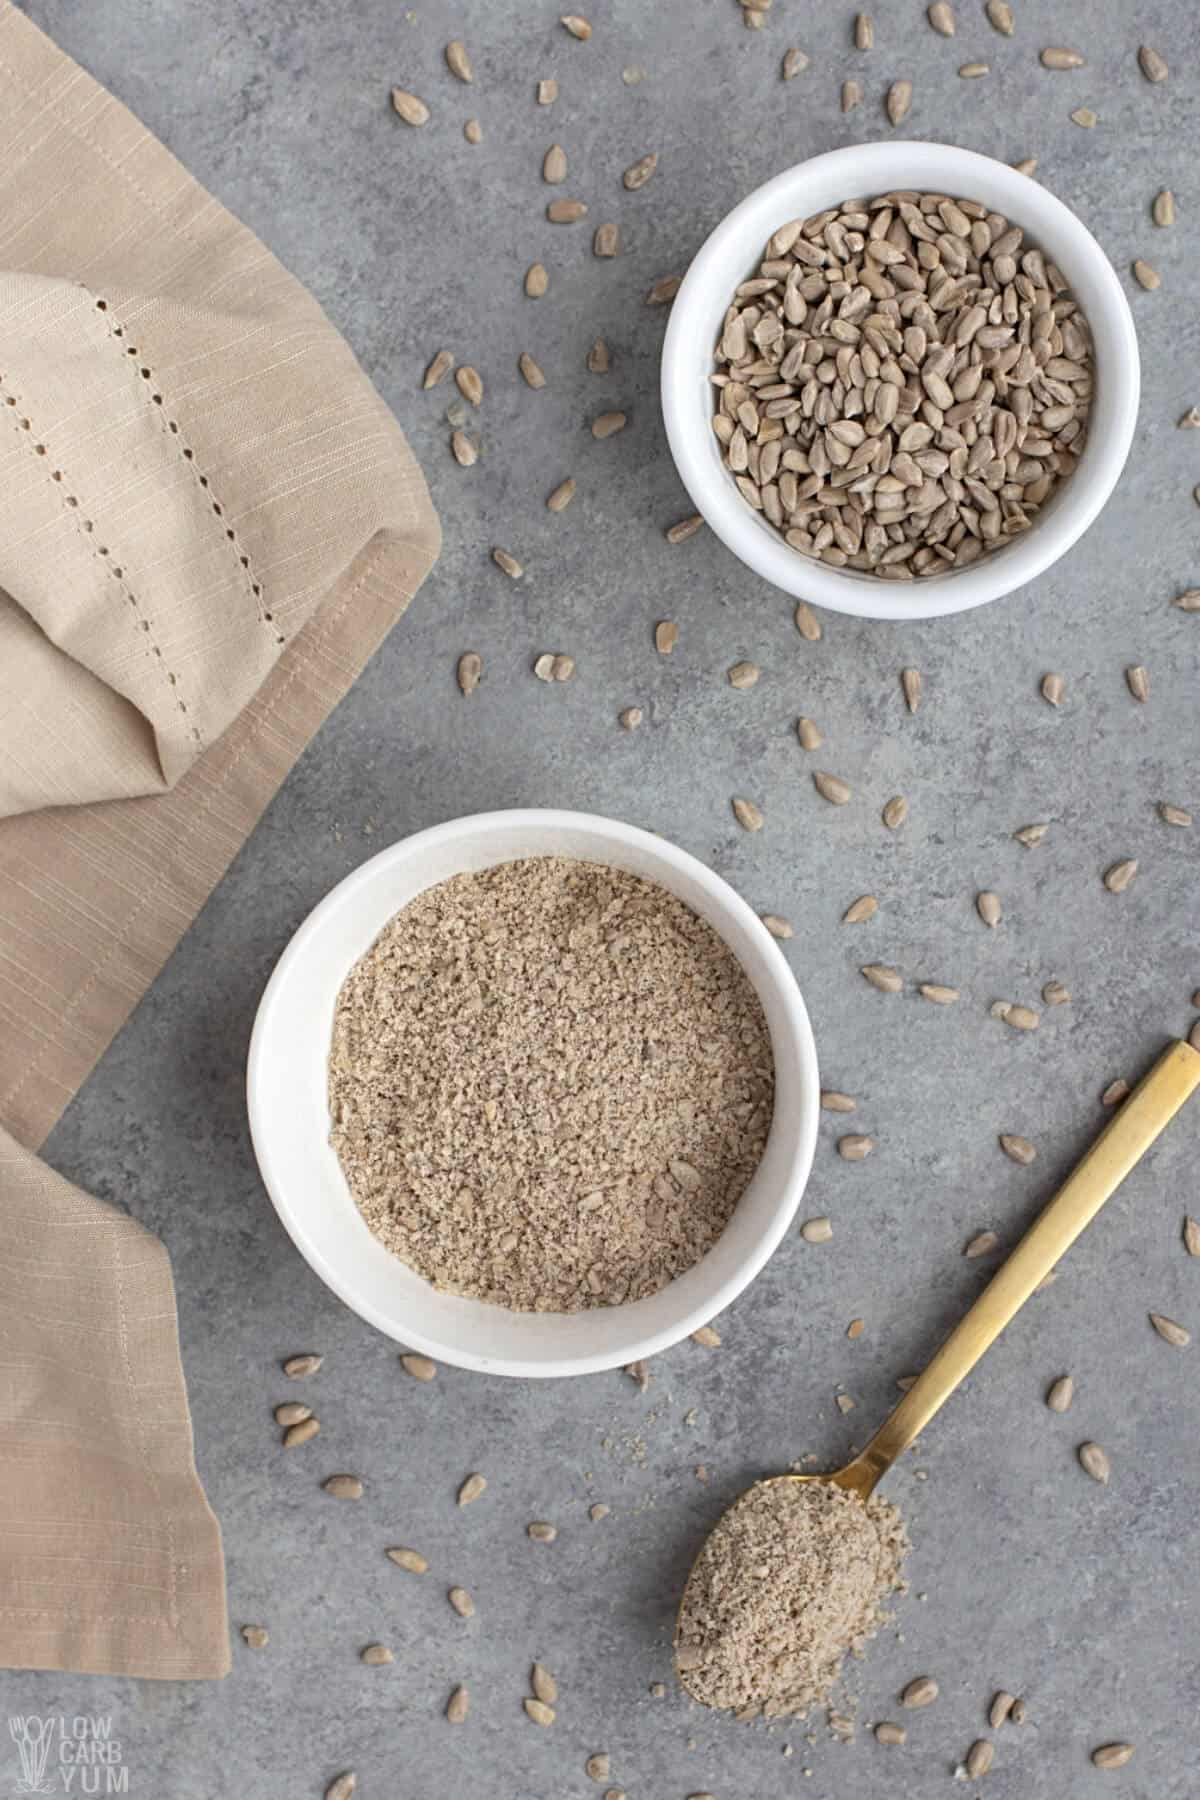 flour and sunflower seeds in bowls